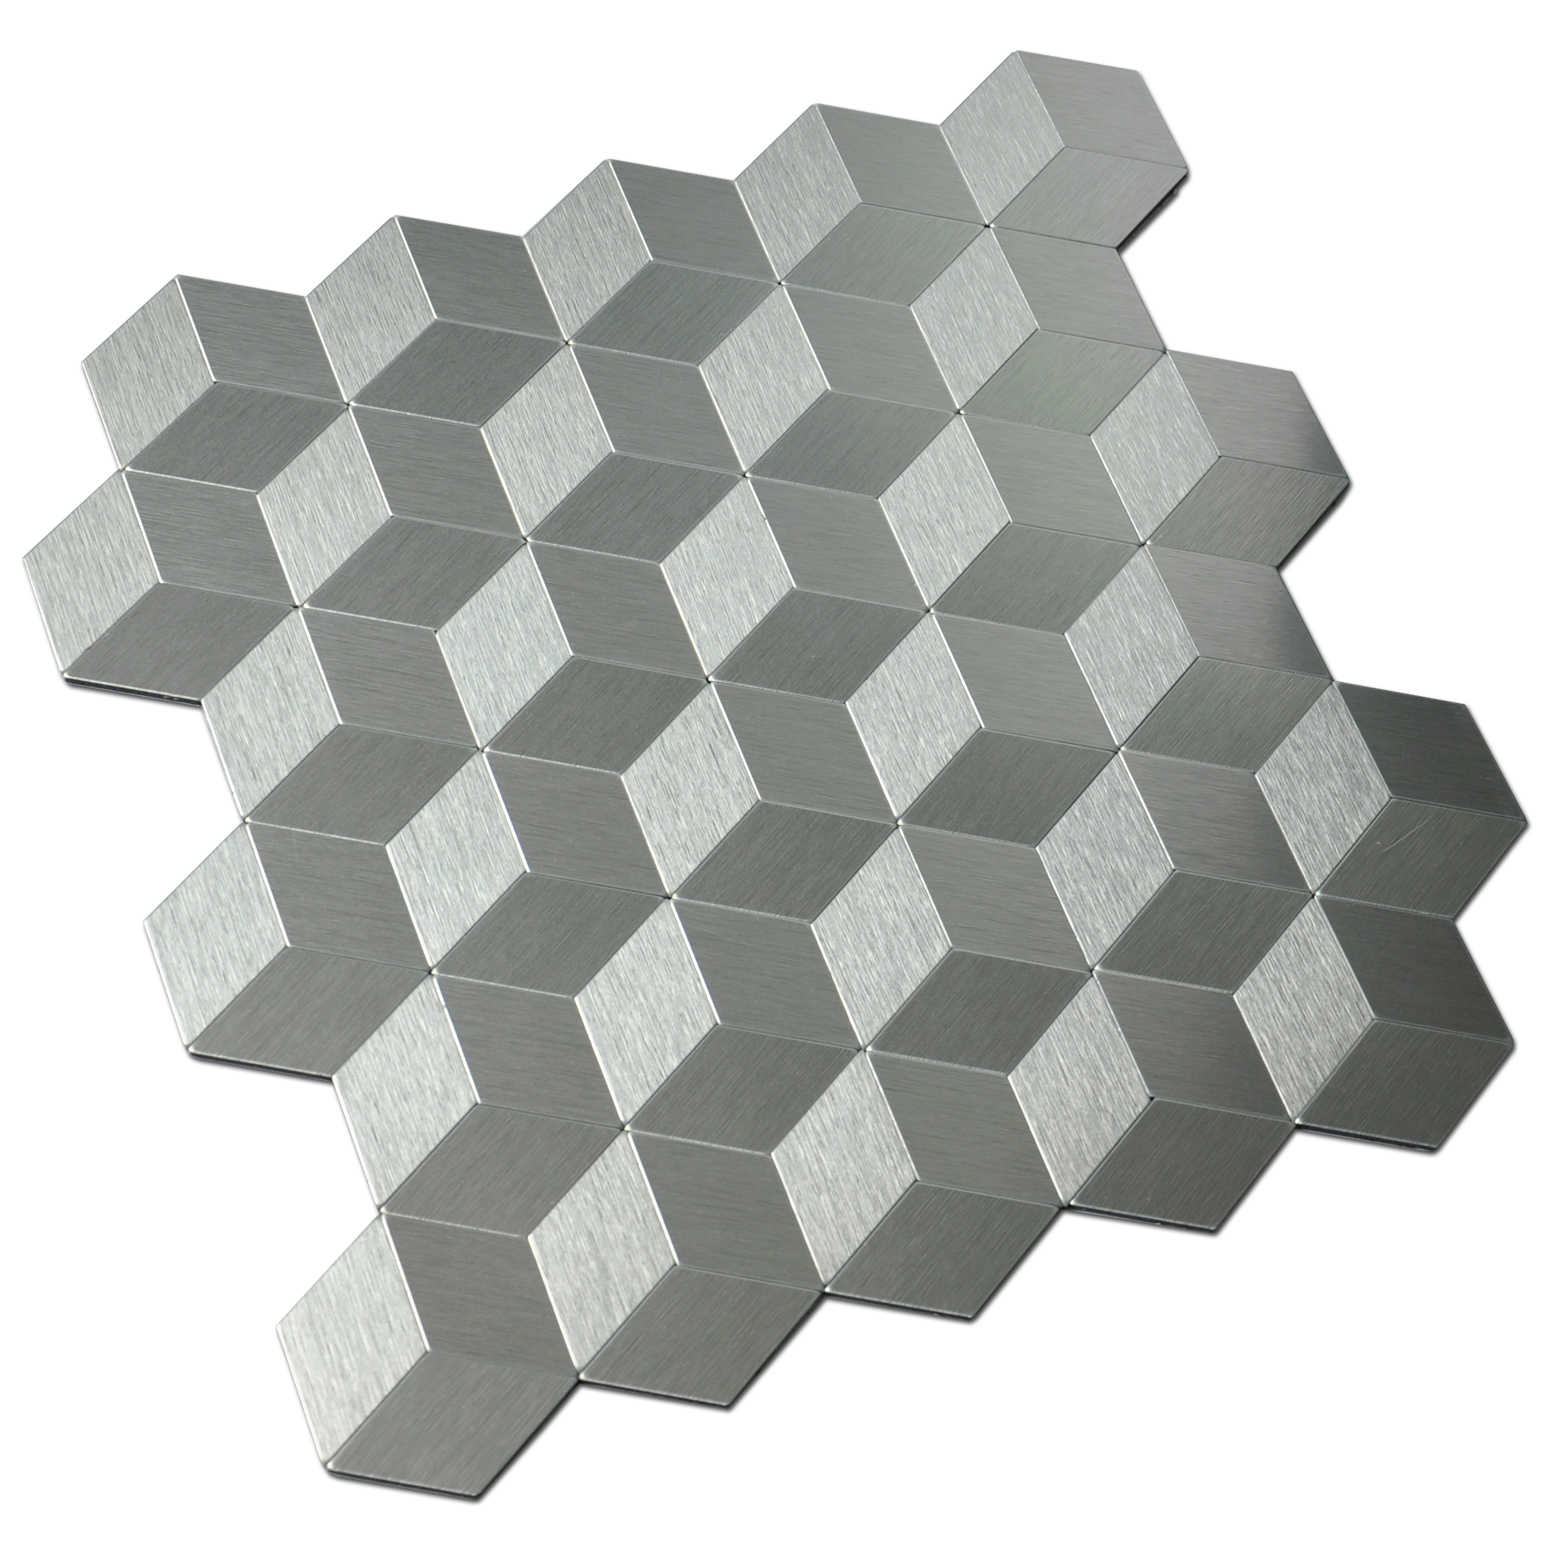 Peel and Stick Metal Backsplash for Kitchen, Cubic Silver, Set of 10